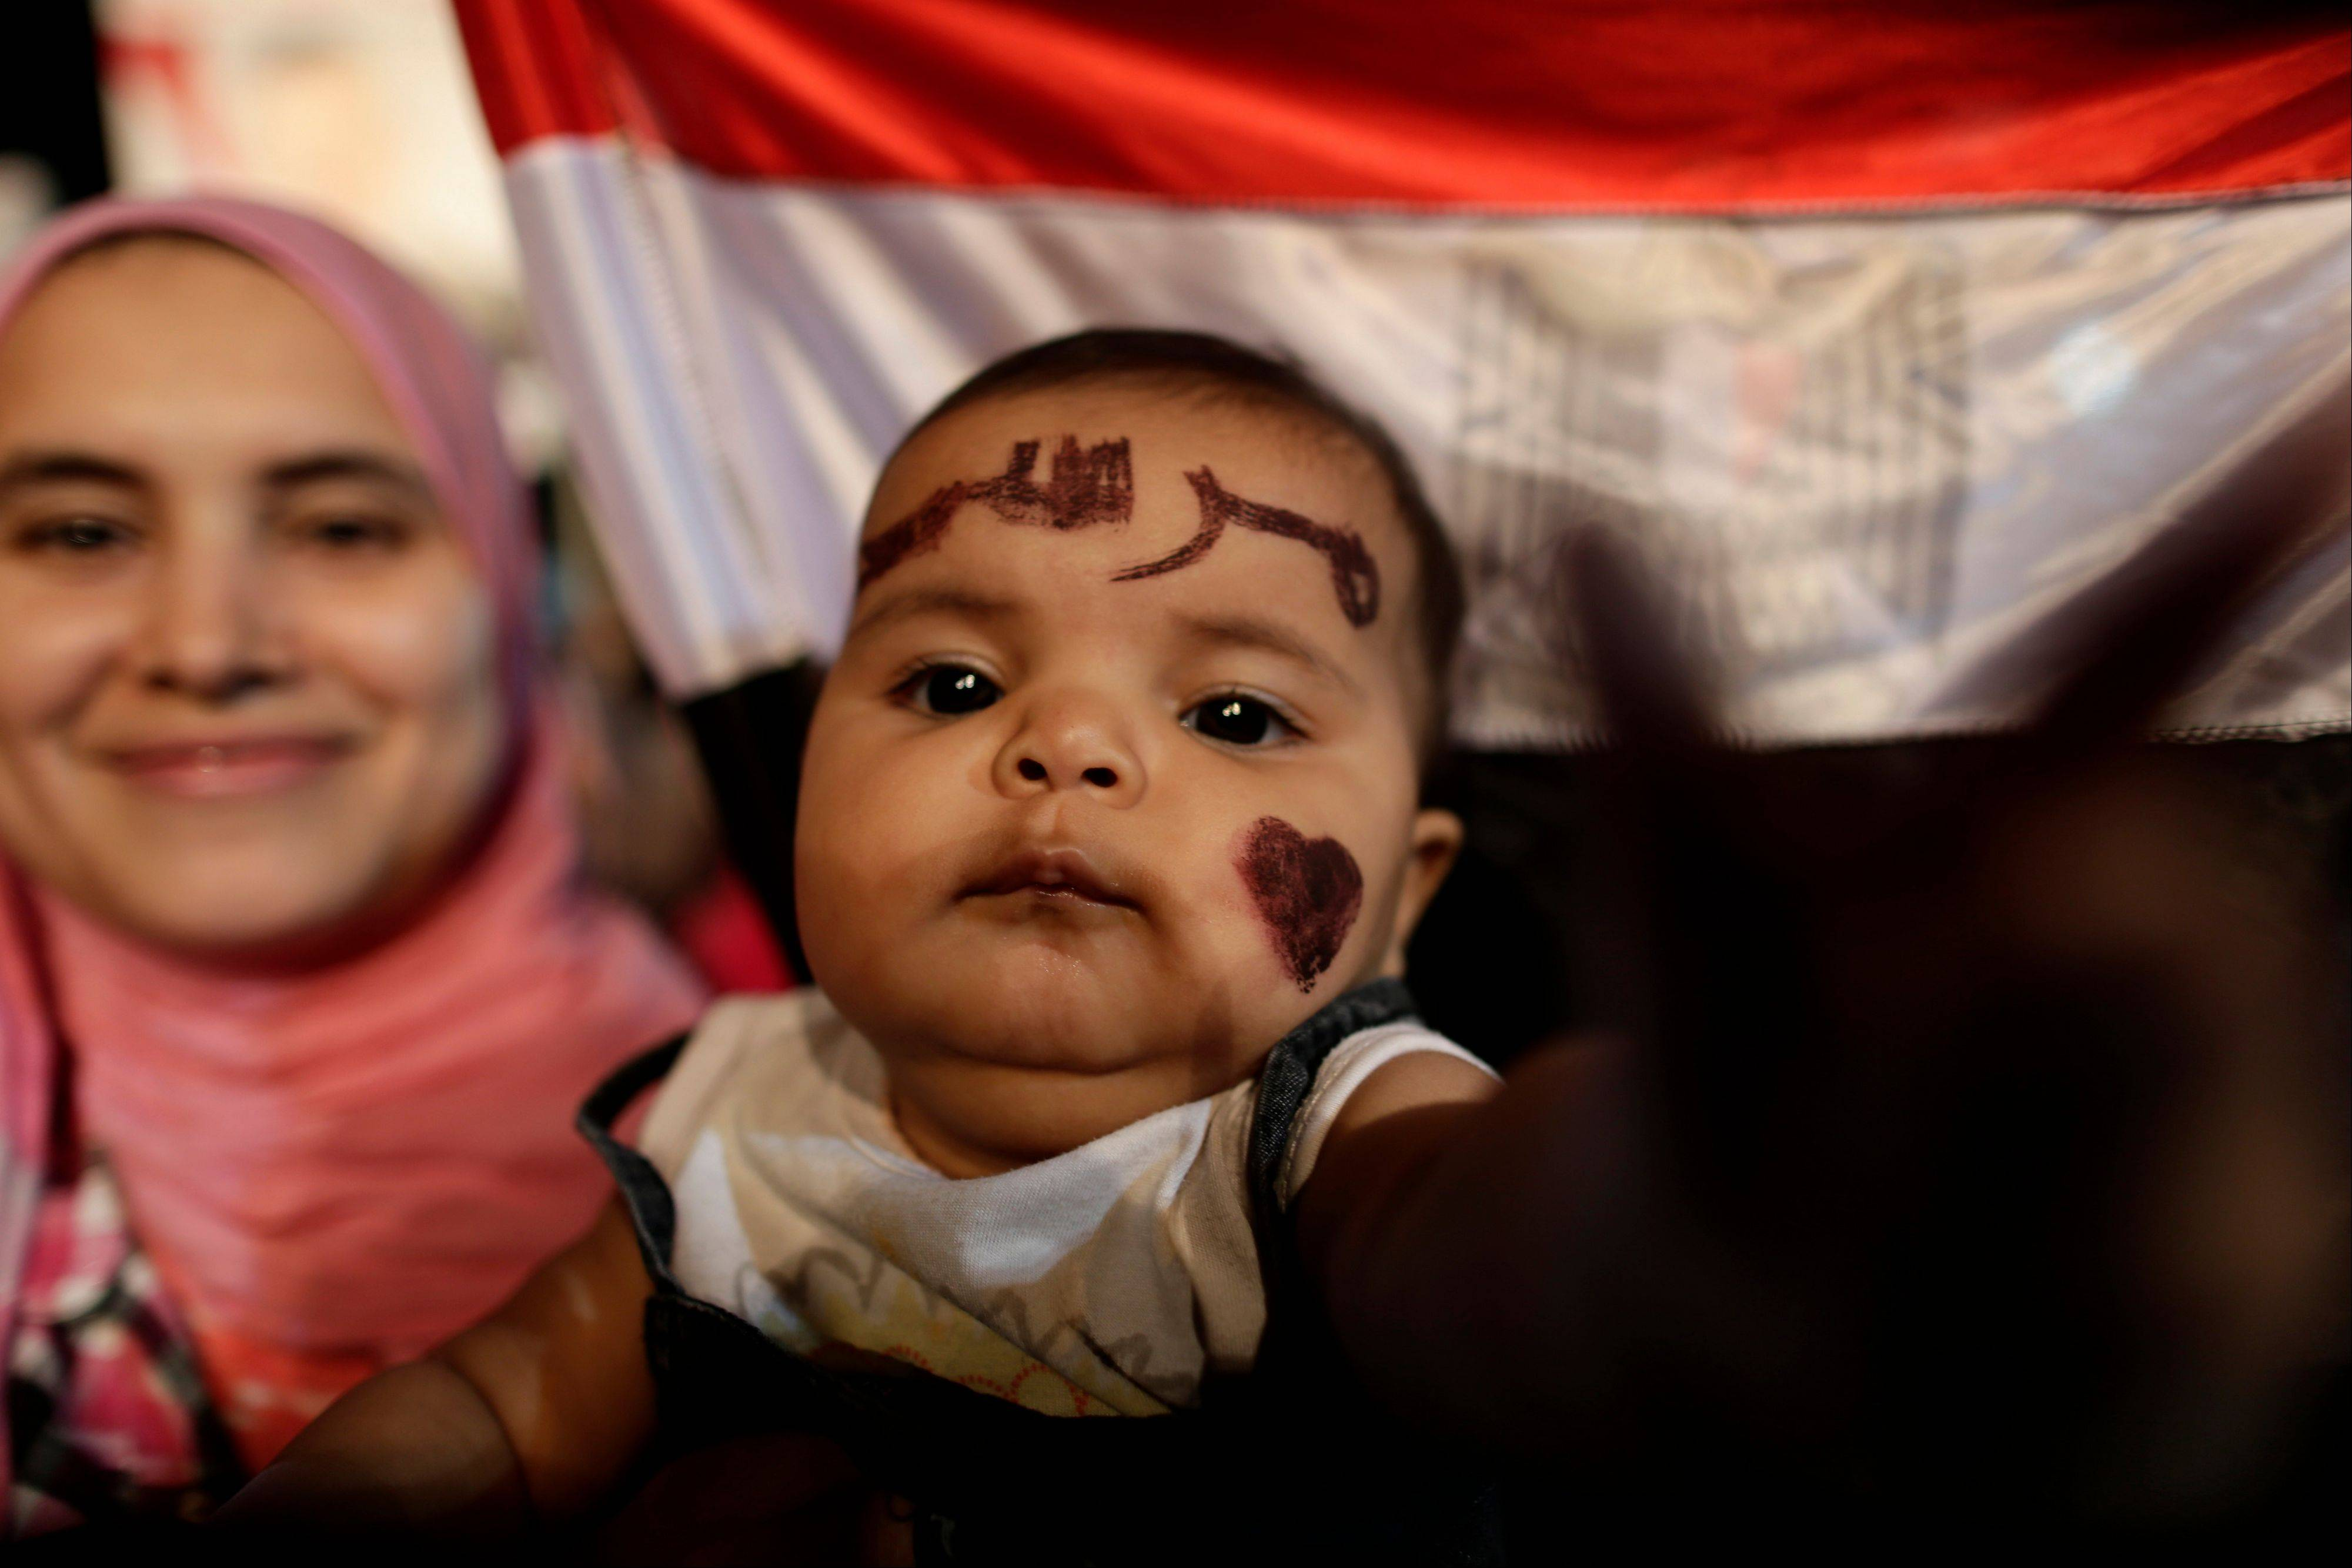 Qurbah, six months old, with Arabic that reads, �Morsi,� painted on her face, attends a demonstration with her mother outside Rabaah al-Adawiya mosque, where they have installed a camp and hold daily rallies at Nasr City, in Cairo, Egypt, Wednesday, July 31, 2013. Egypt�s military-backed government has ordered the police to break up the sit-in protests by supporters of ousted President Mohammed Morsi, saying they pose an �unacceptable threat� to national security. Egyptian authorities on Thursday offered �safe passage and protection� for thousands of supporters of the country�s ousted president if they end their marathon sit-ins in Cairo.